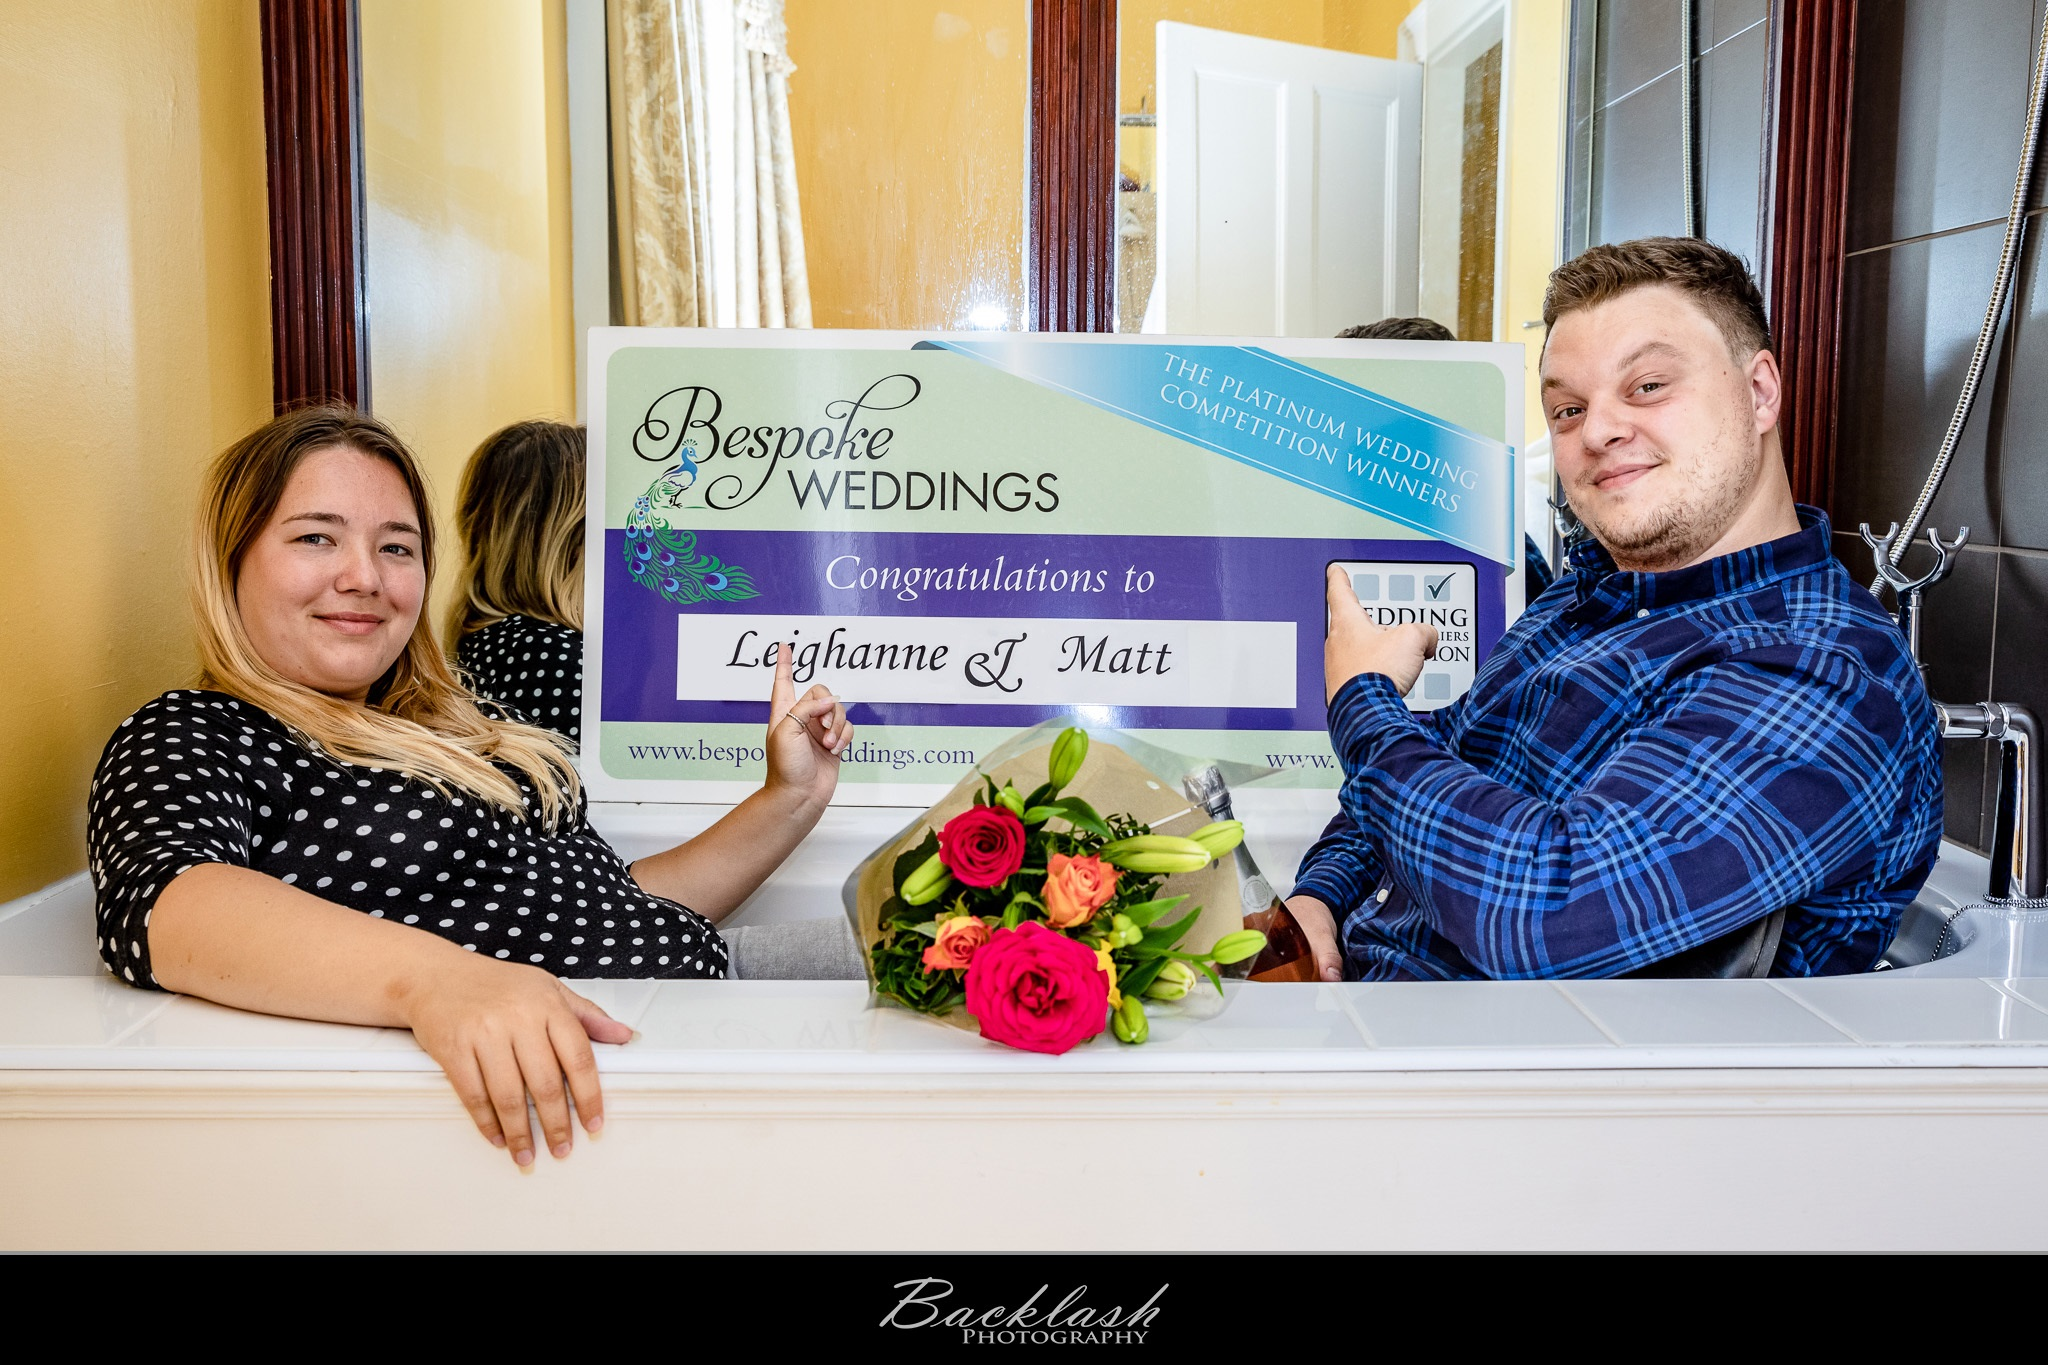 Leighanne & Matt - Netley Hall Estate 2